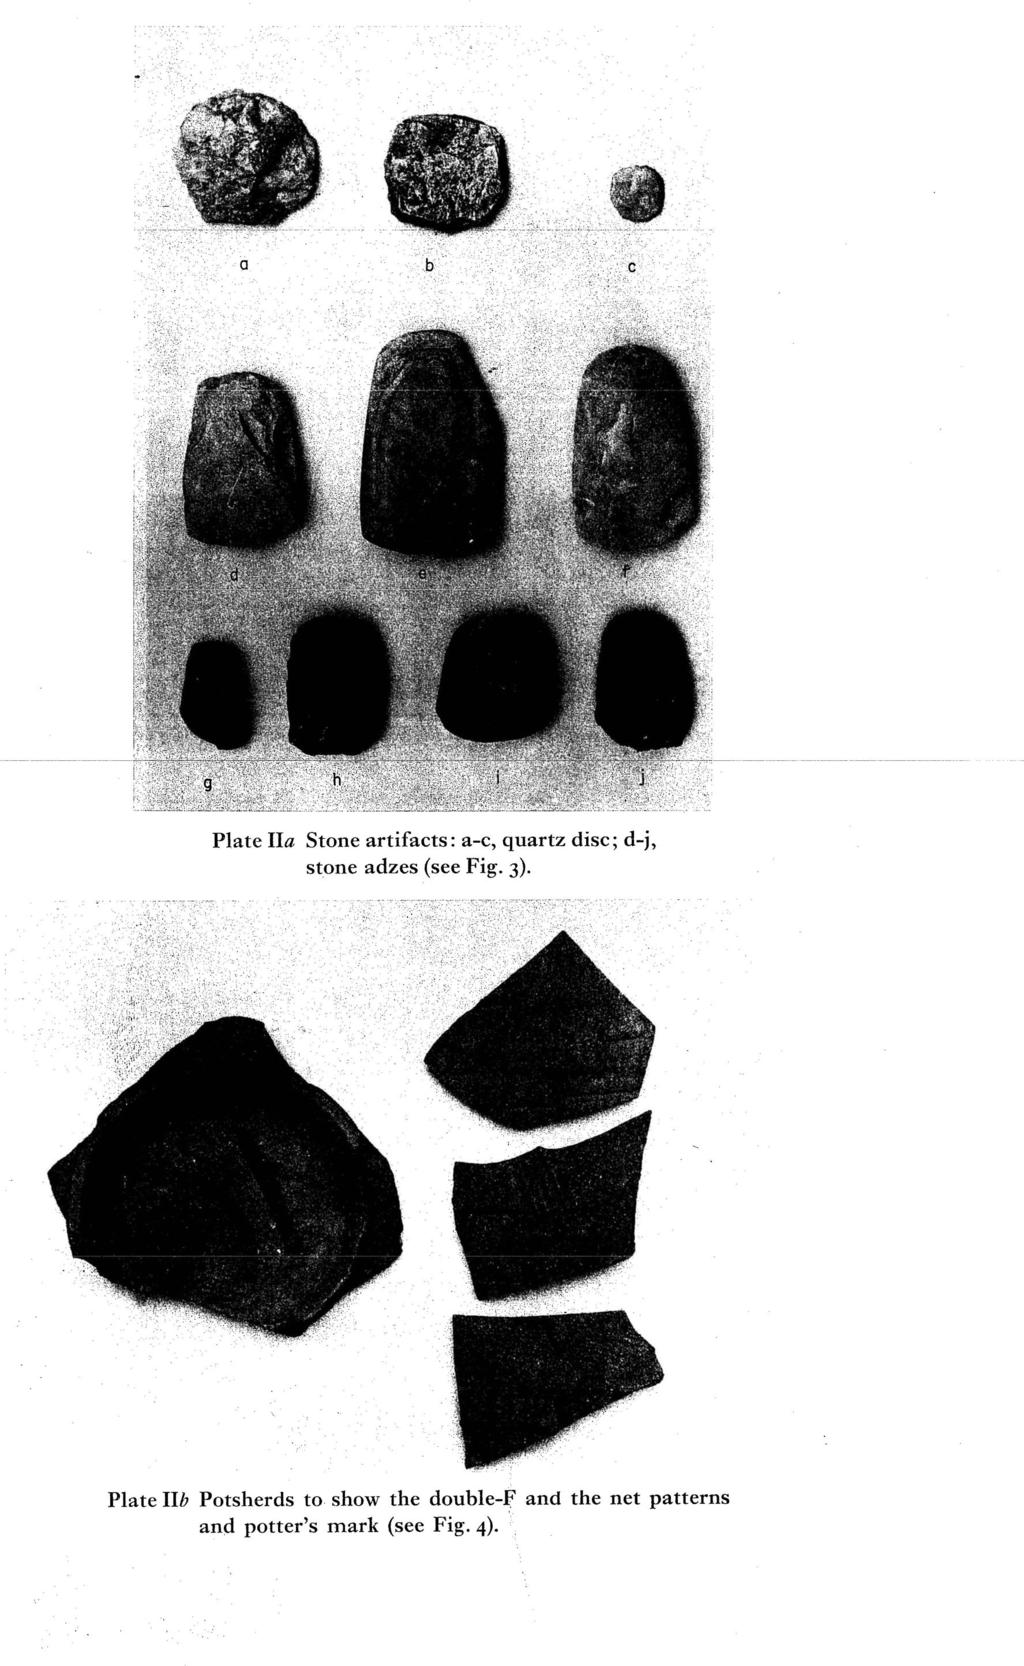 Plate IIa Stone artifacts: a-c, quartz disc; d-j, stone adzes (see Fig. 3).